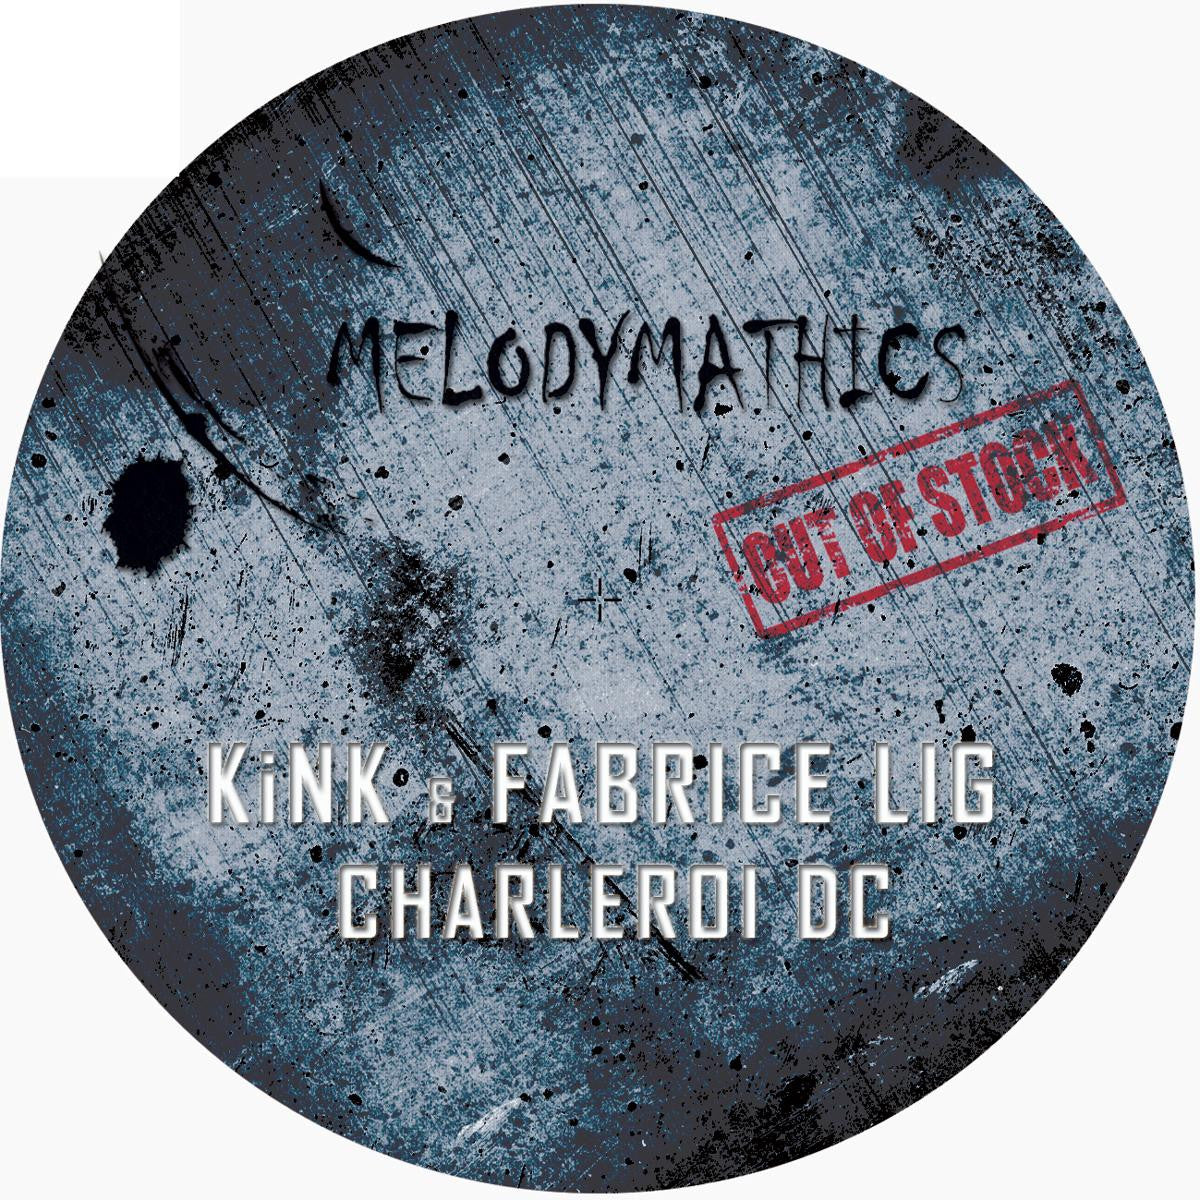 KiNK & Fabrice Lig - Charleroi DC EP , Vinyl - Melodymathics, Unearthed Sounds